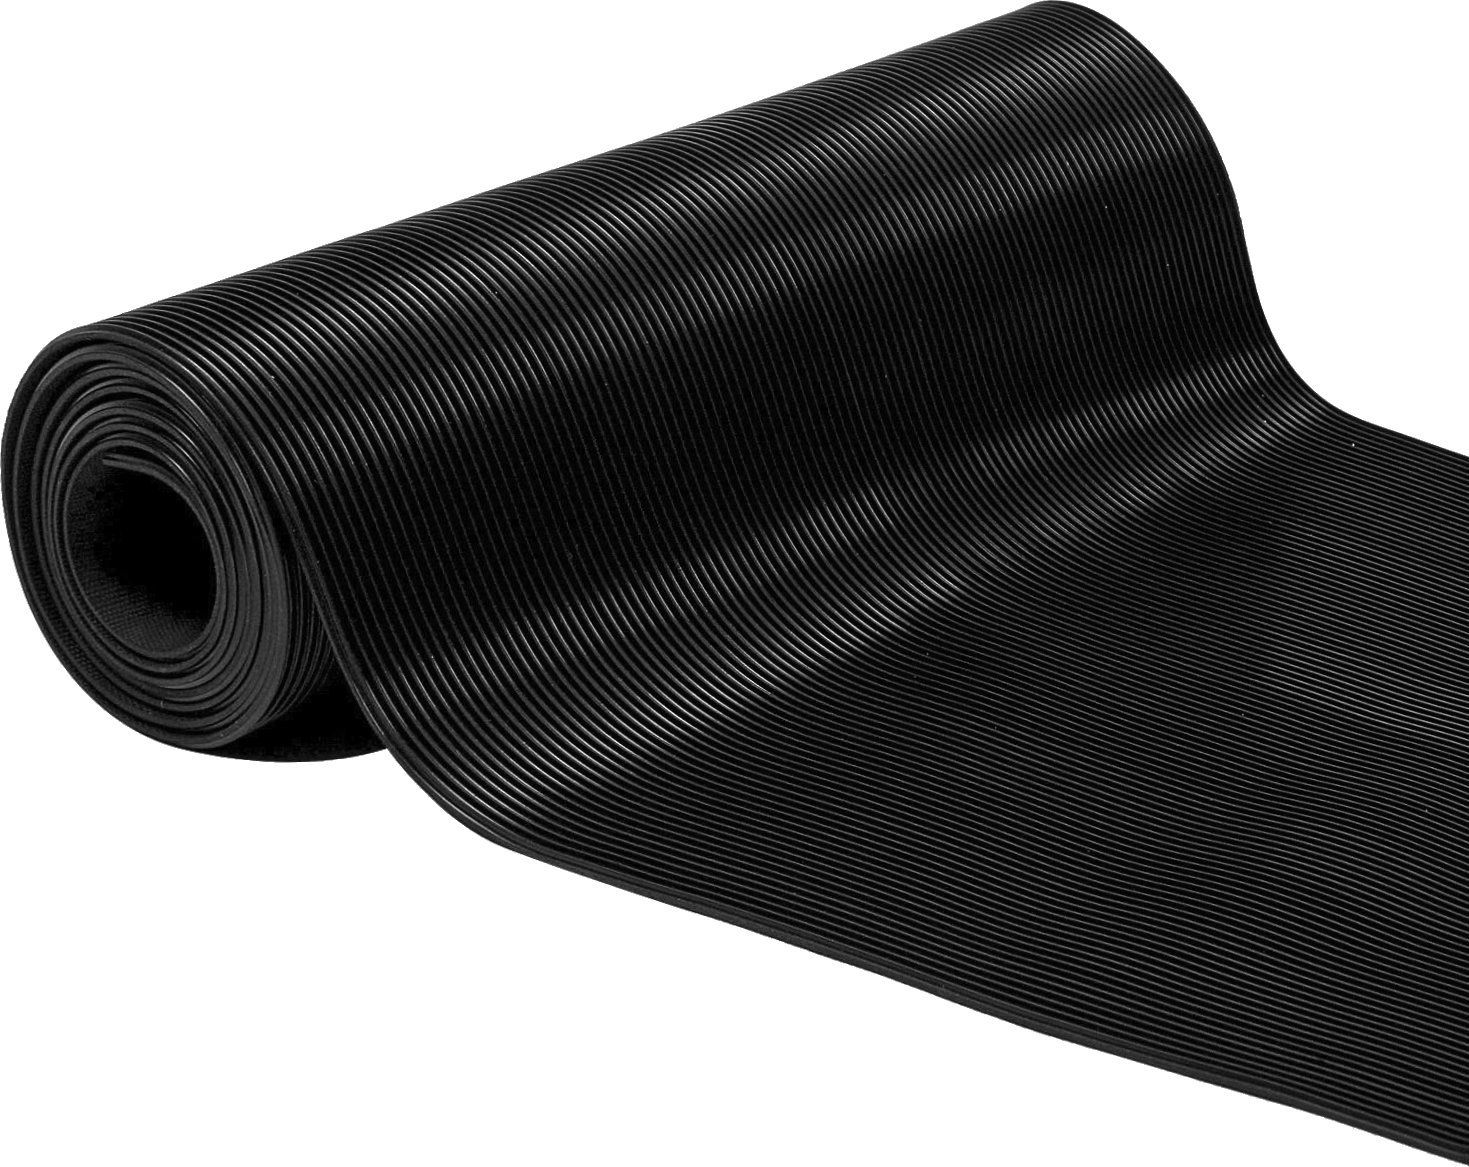 Herco 2 X 3 All Purpose 1 8 Corrugated Rubber Mat Black Learn More By Visiting The Image Link This Is A Dog Kennel Designs Rubber Mat Funny Doormats